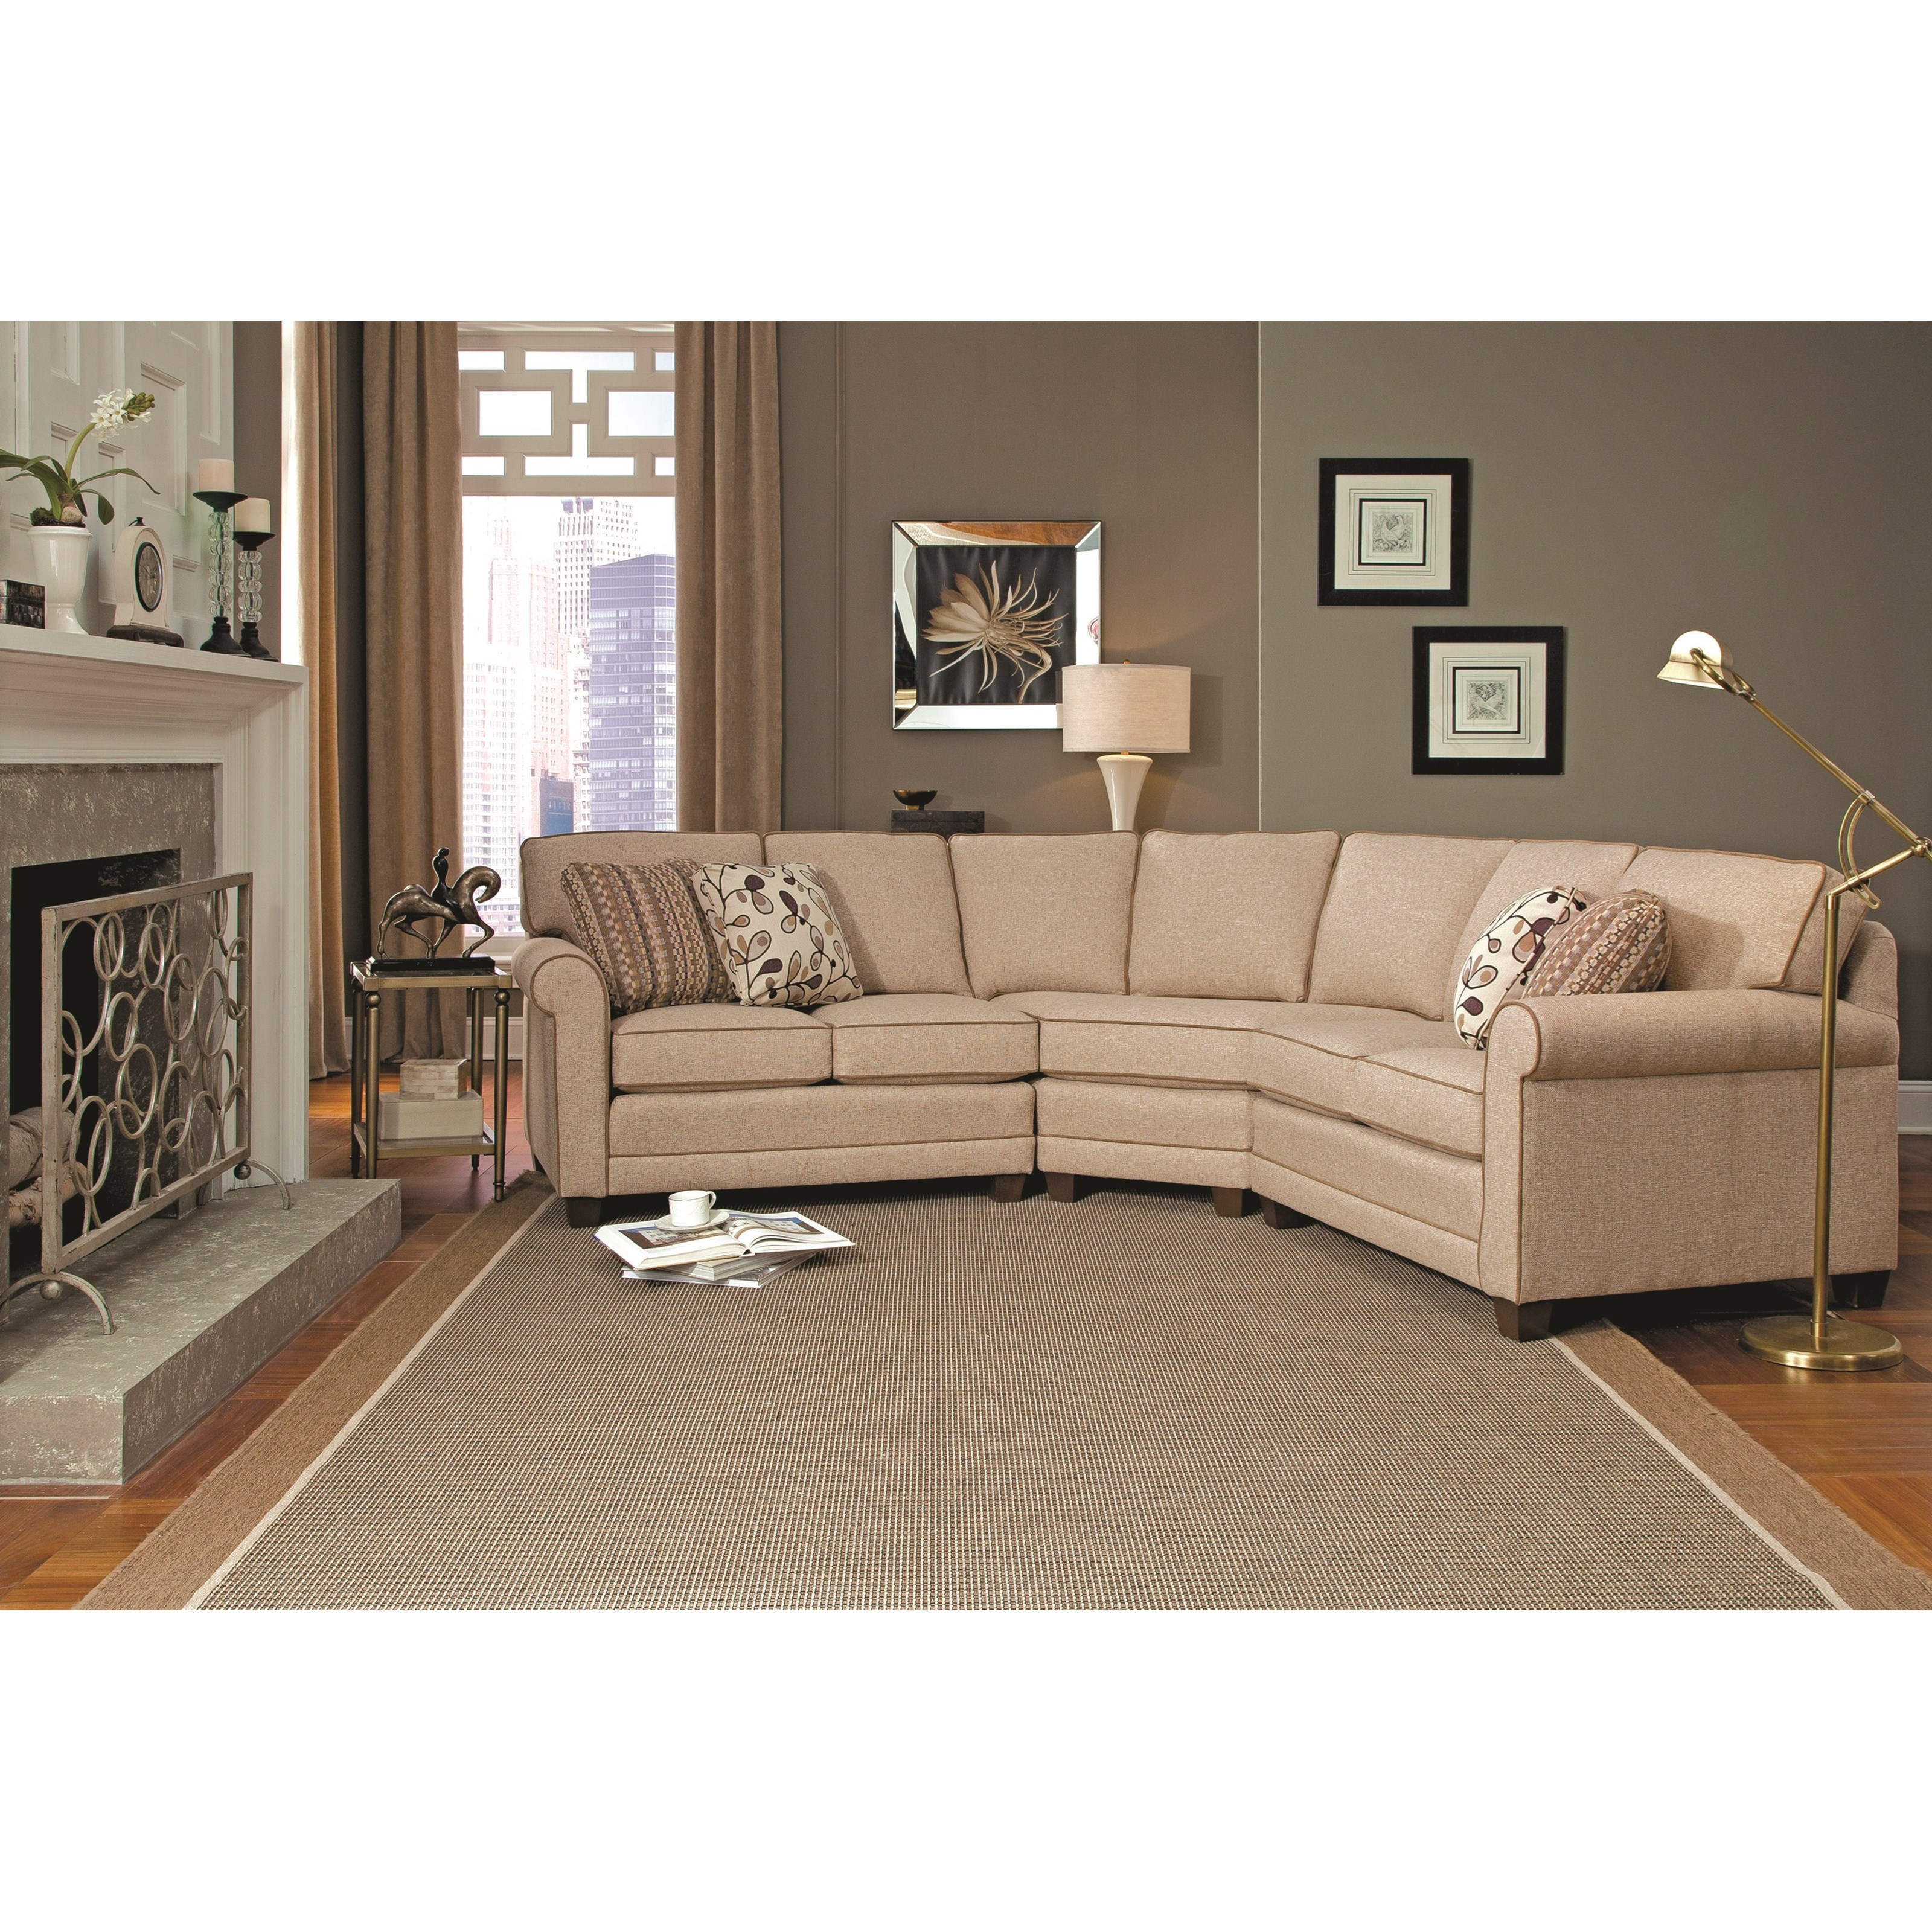 366 3-pc Sectional by Smith Brothers at Mueller Furniture